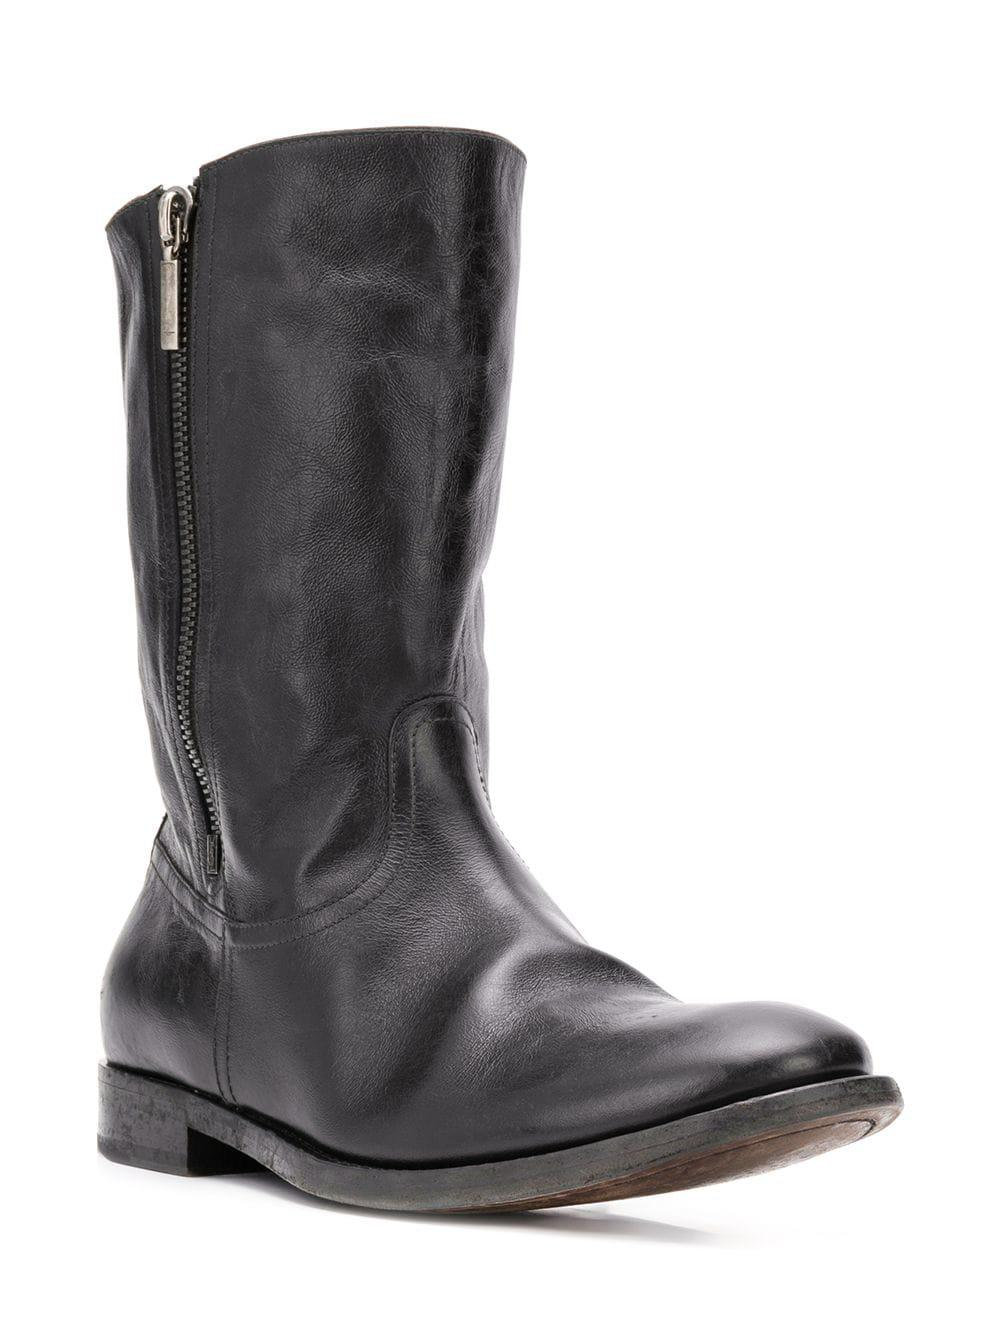 d903bf4ce8d Lyst - Saint Laurent Classic Shearling Boots in Black for Men